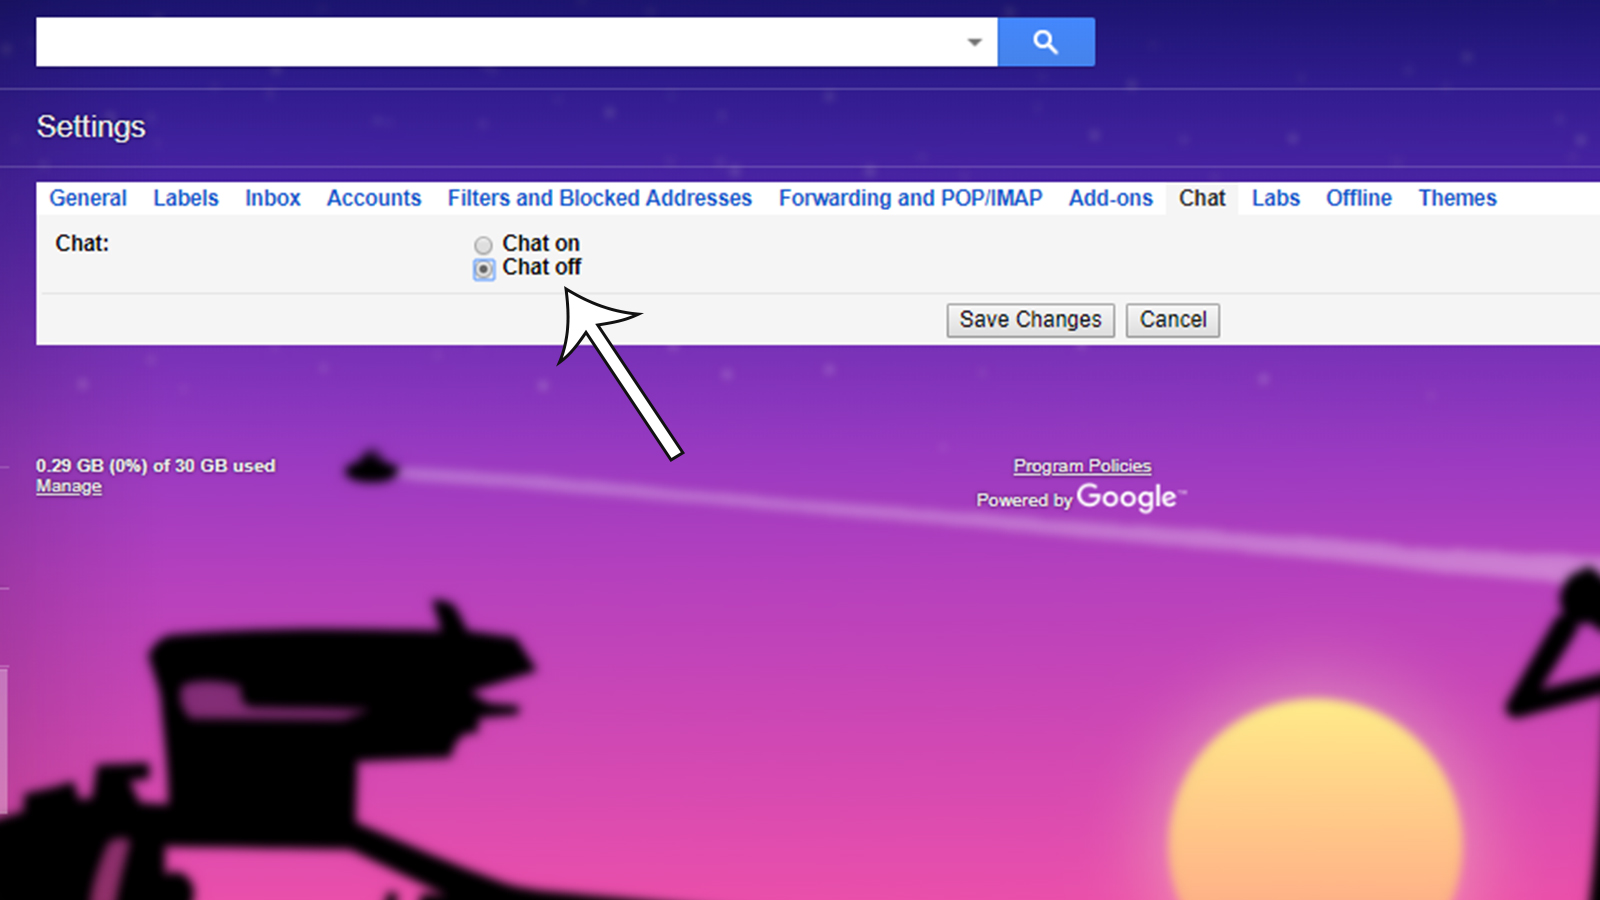 - chat off - Gmail features you should disable right now, bonus tips included